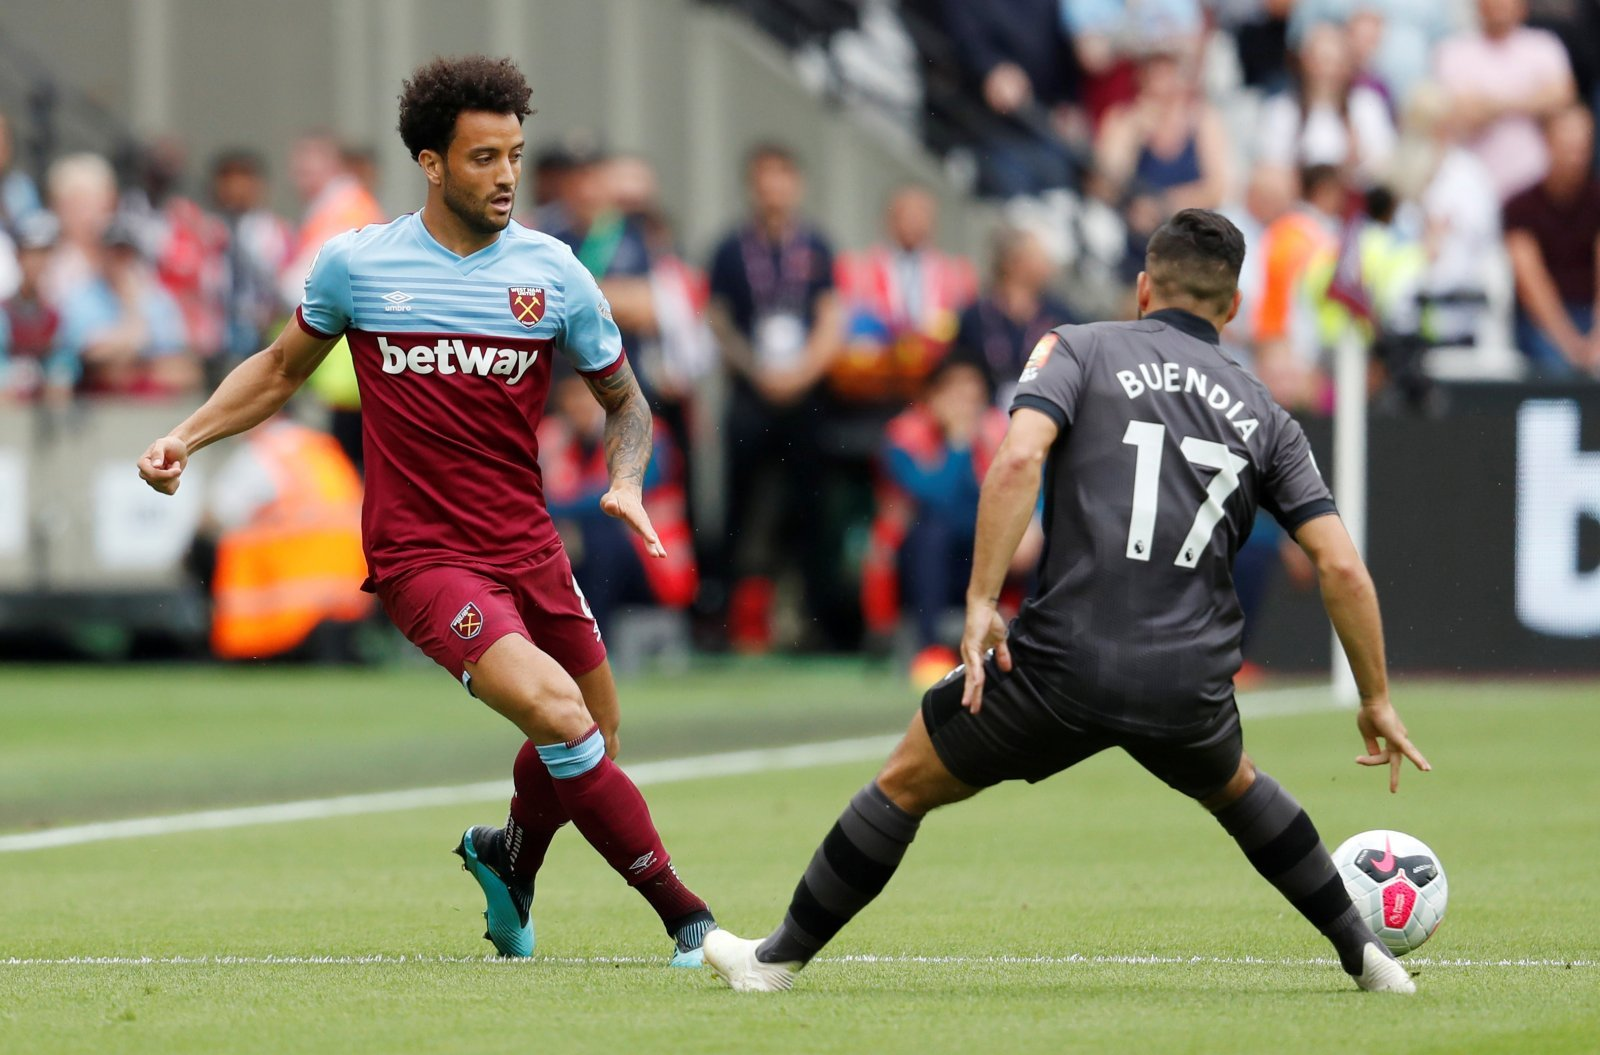 West Ham United: These fans enjoyed Felipe Anderson's performance against Norwich City